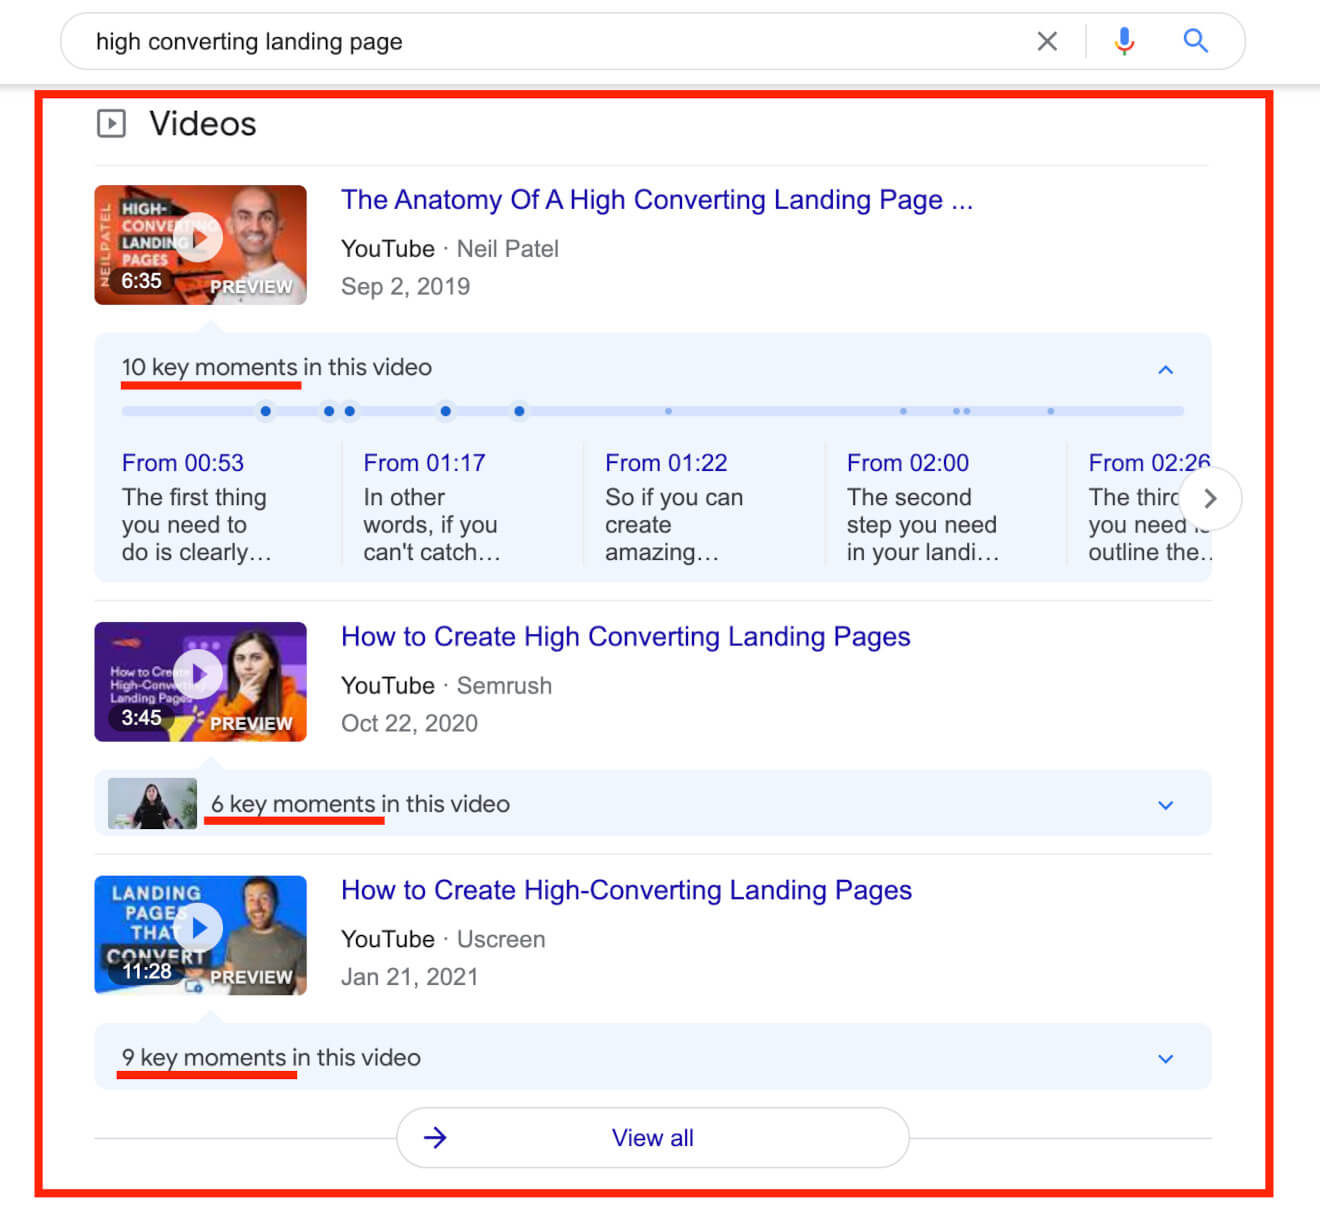 youtube in google search results